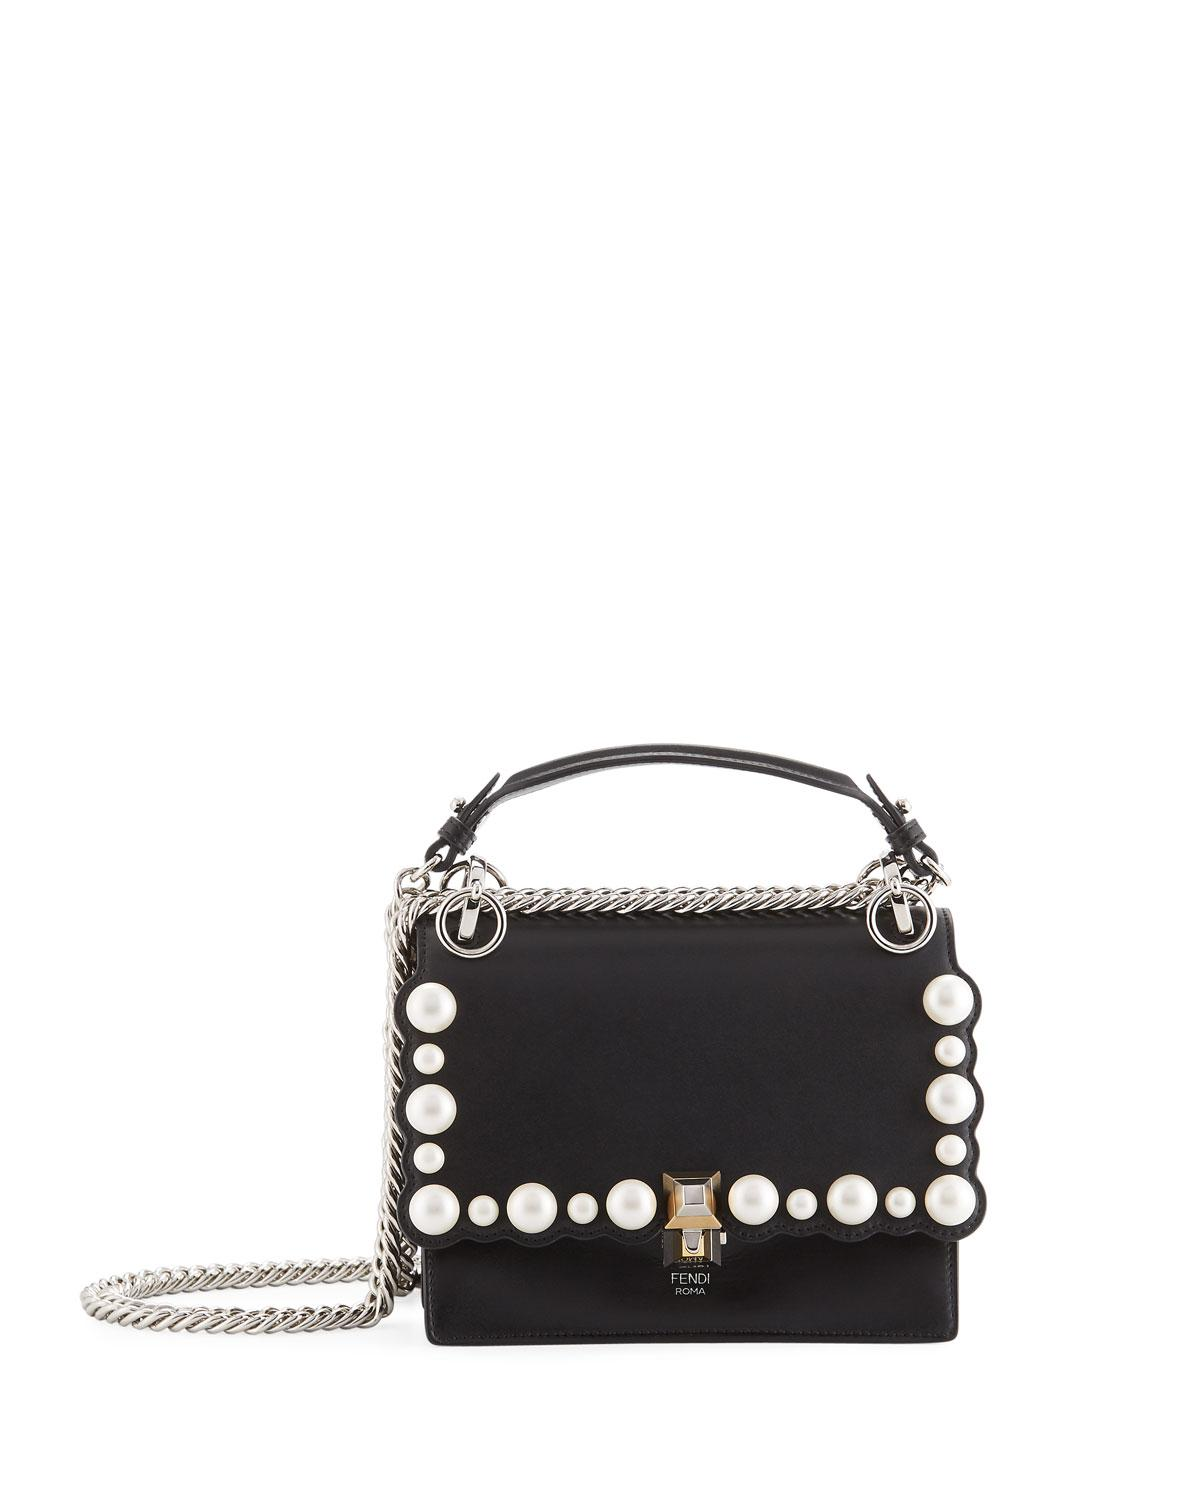 9dd8c4b02ff7 Lyst - Fendi Kan I Small Pearly-studded Leather Shoulder Bag in Black